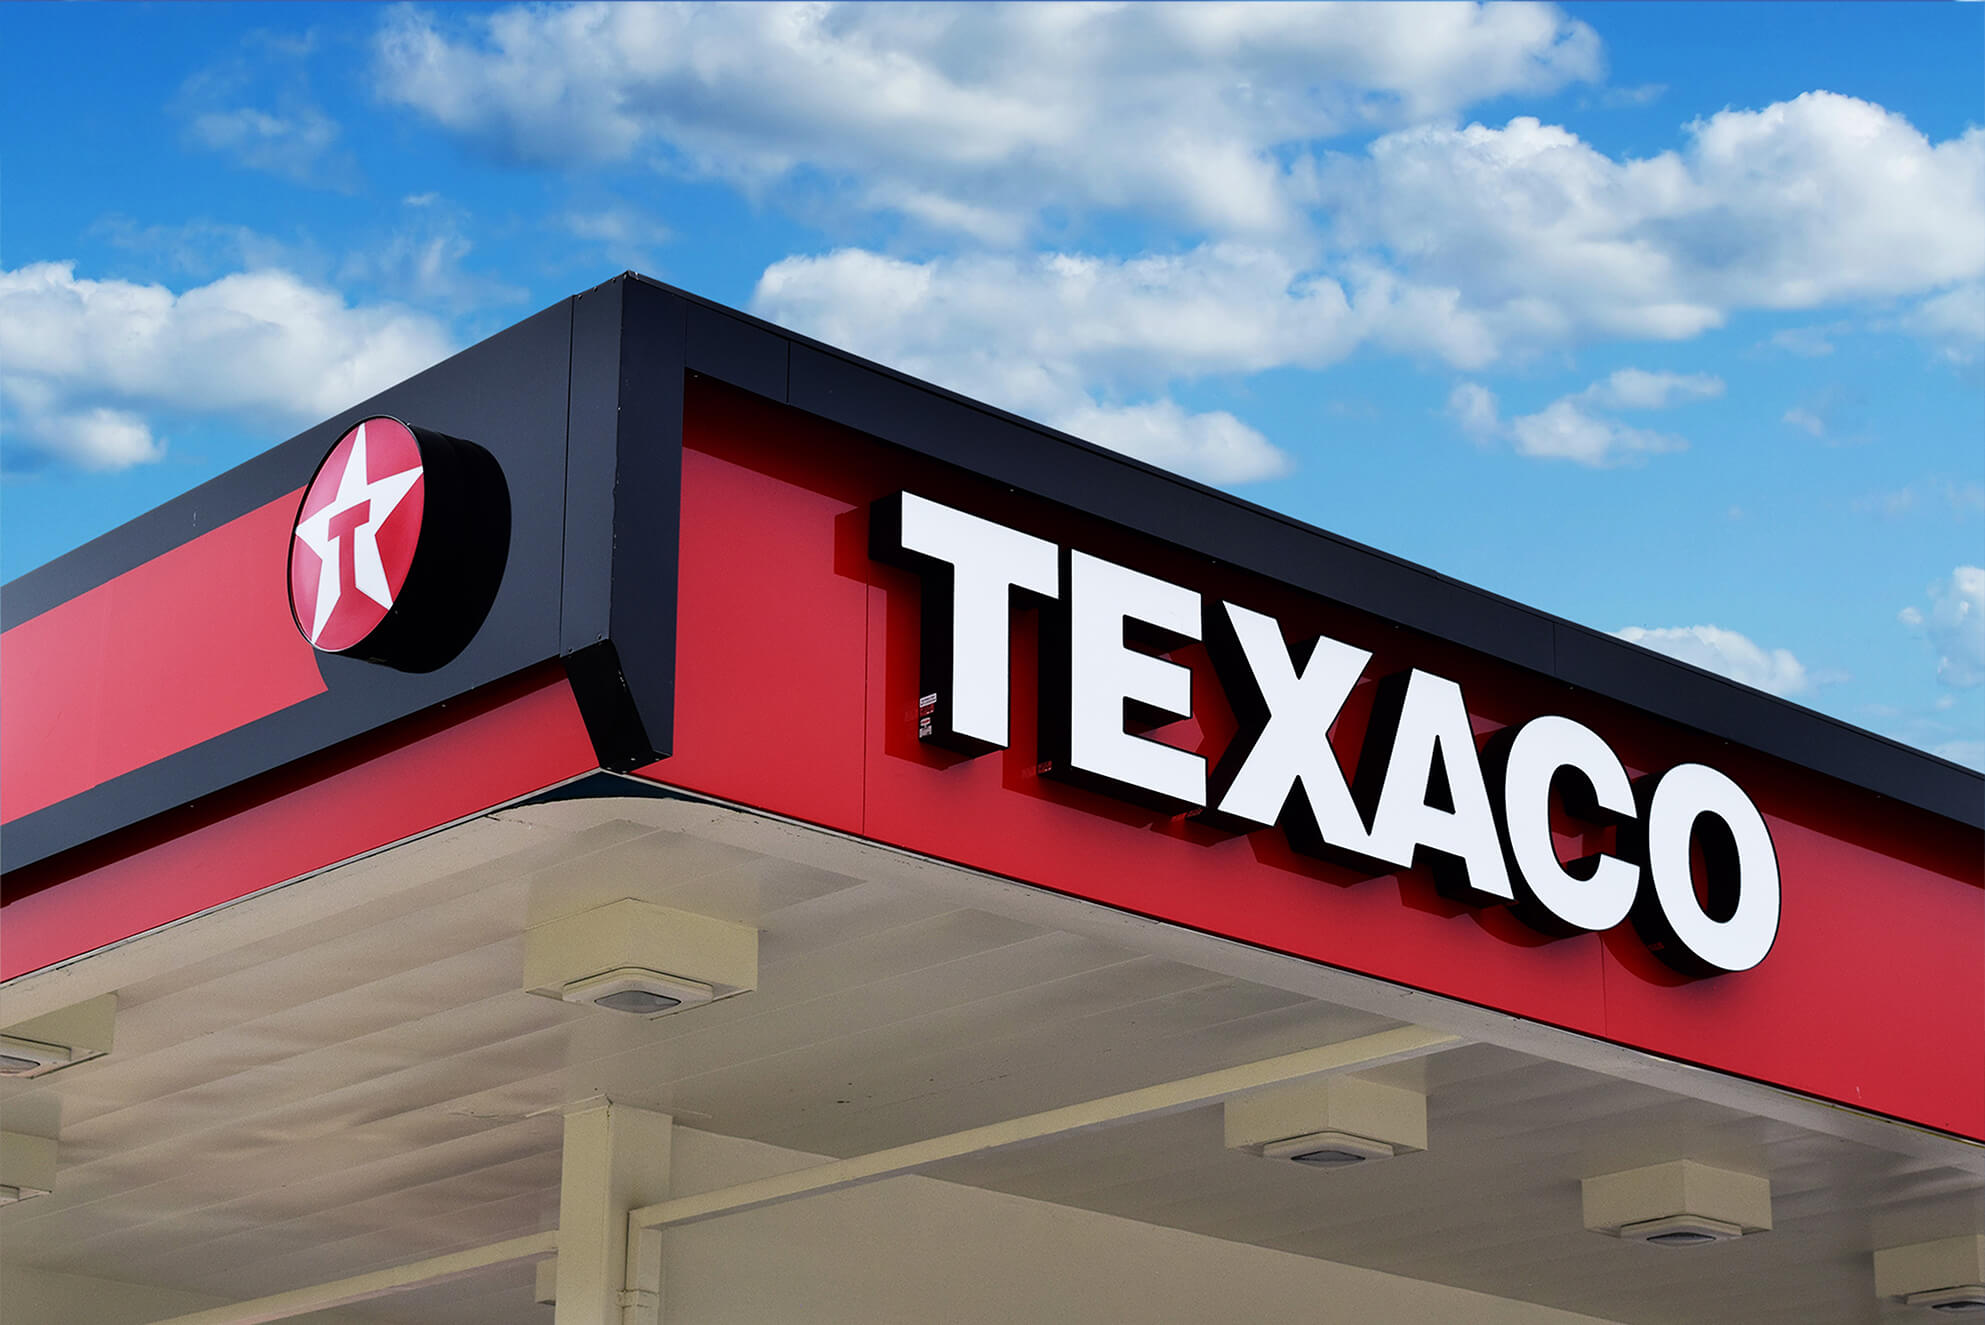 Canopy signage made for one of several Texaco locations.